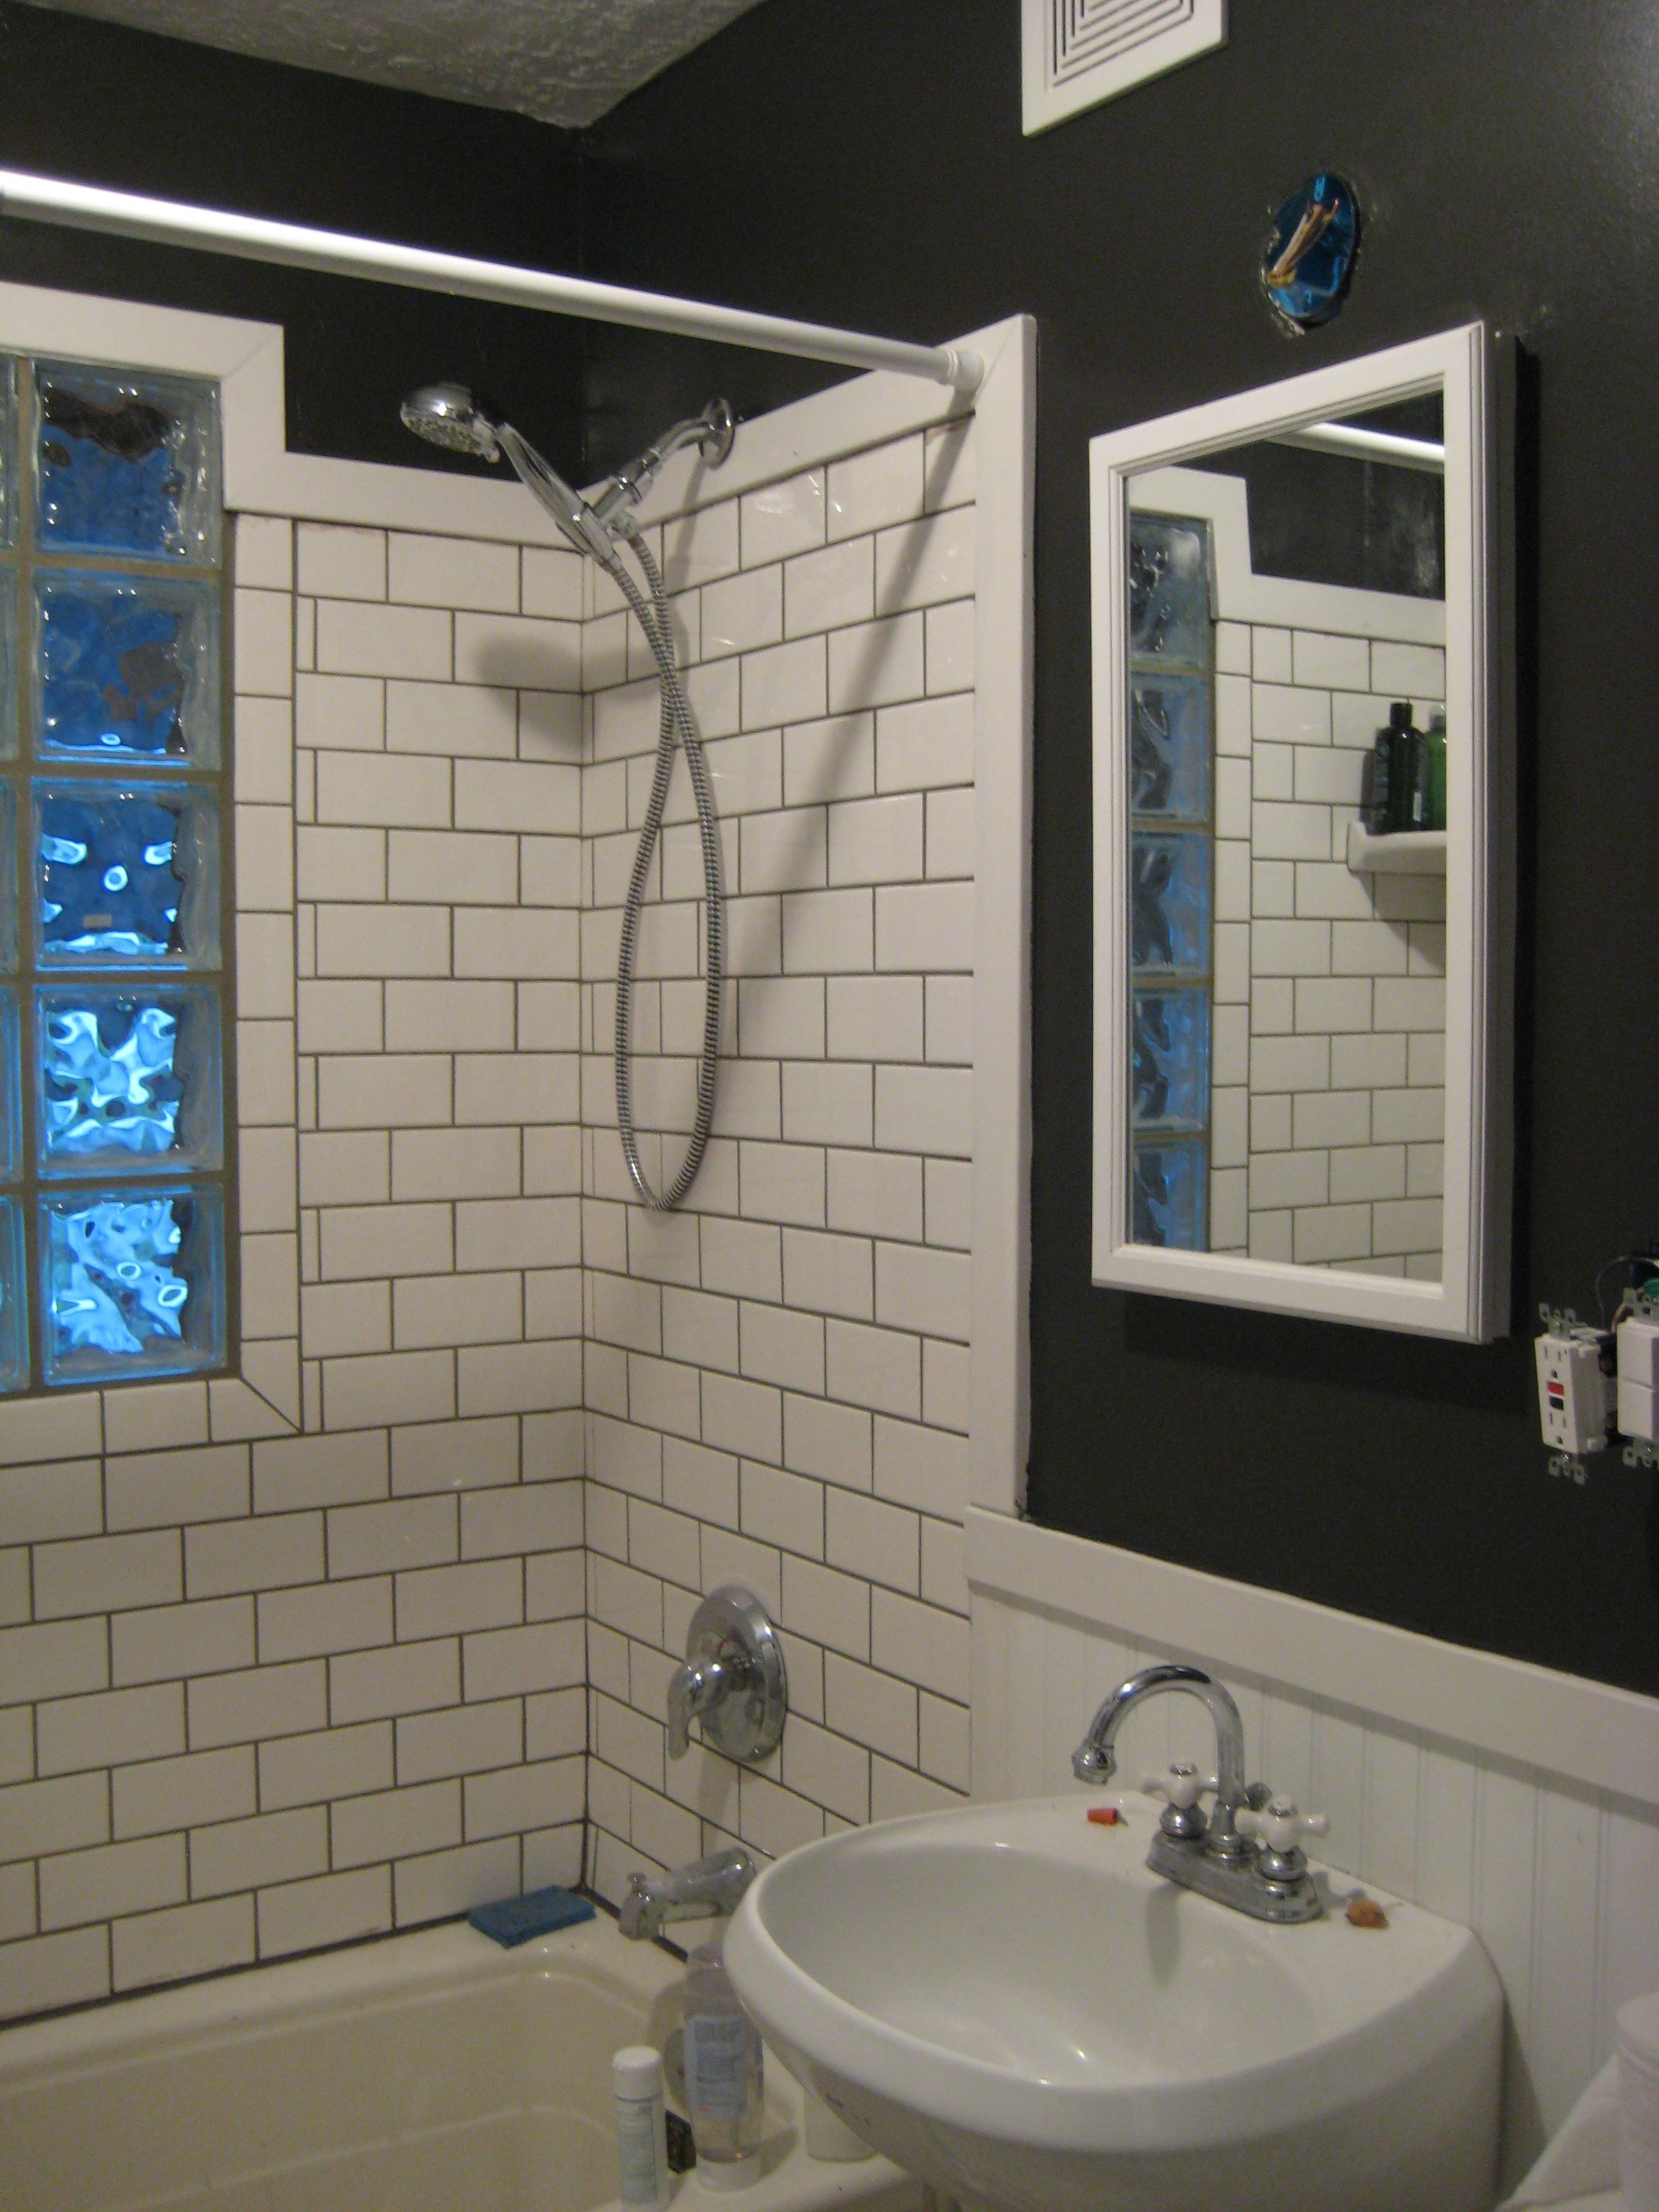 Painting Bathroom Tile Board beadboard on walls, subway tile and glass block window in shower